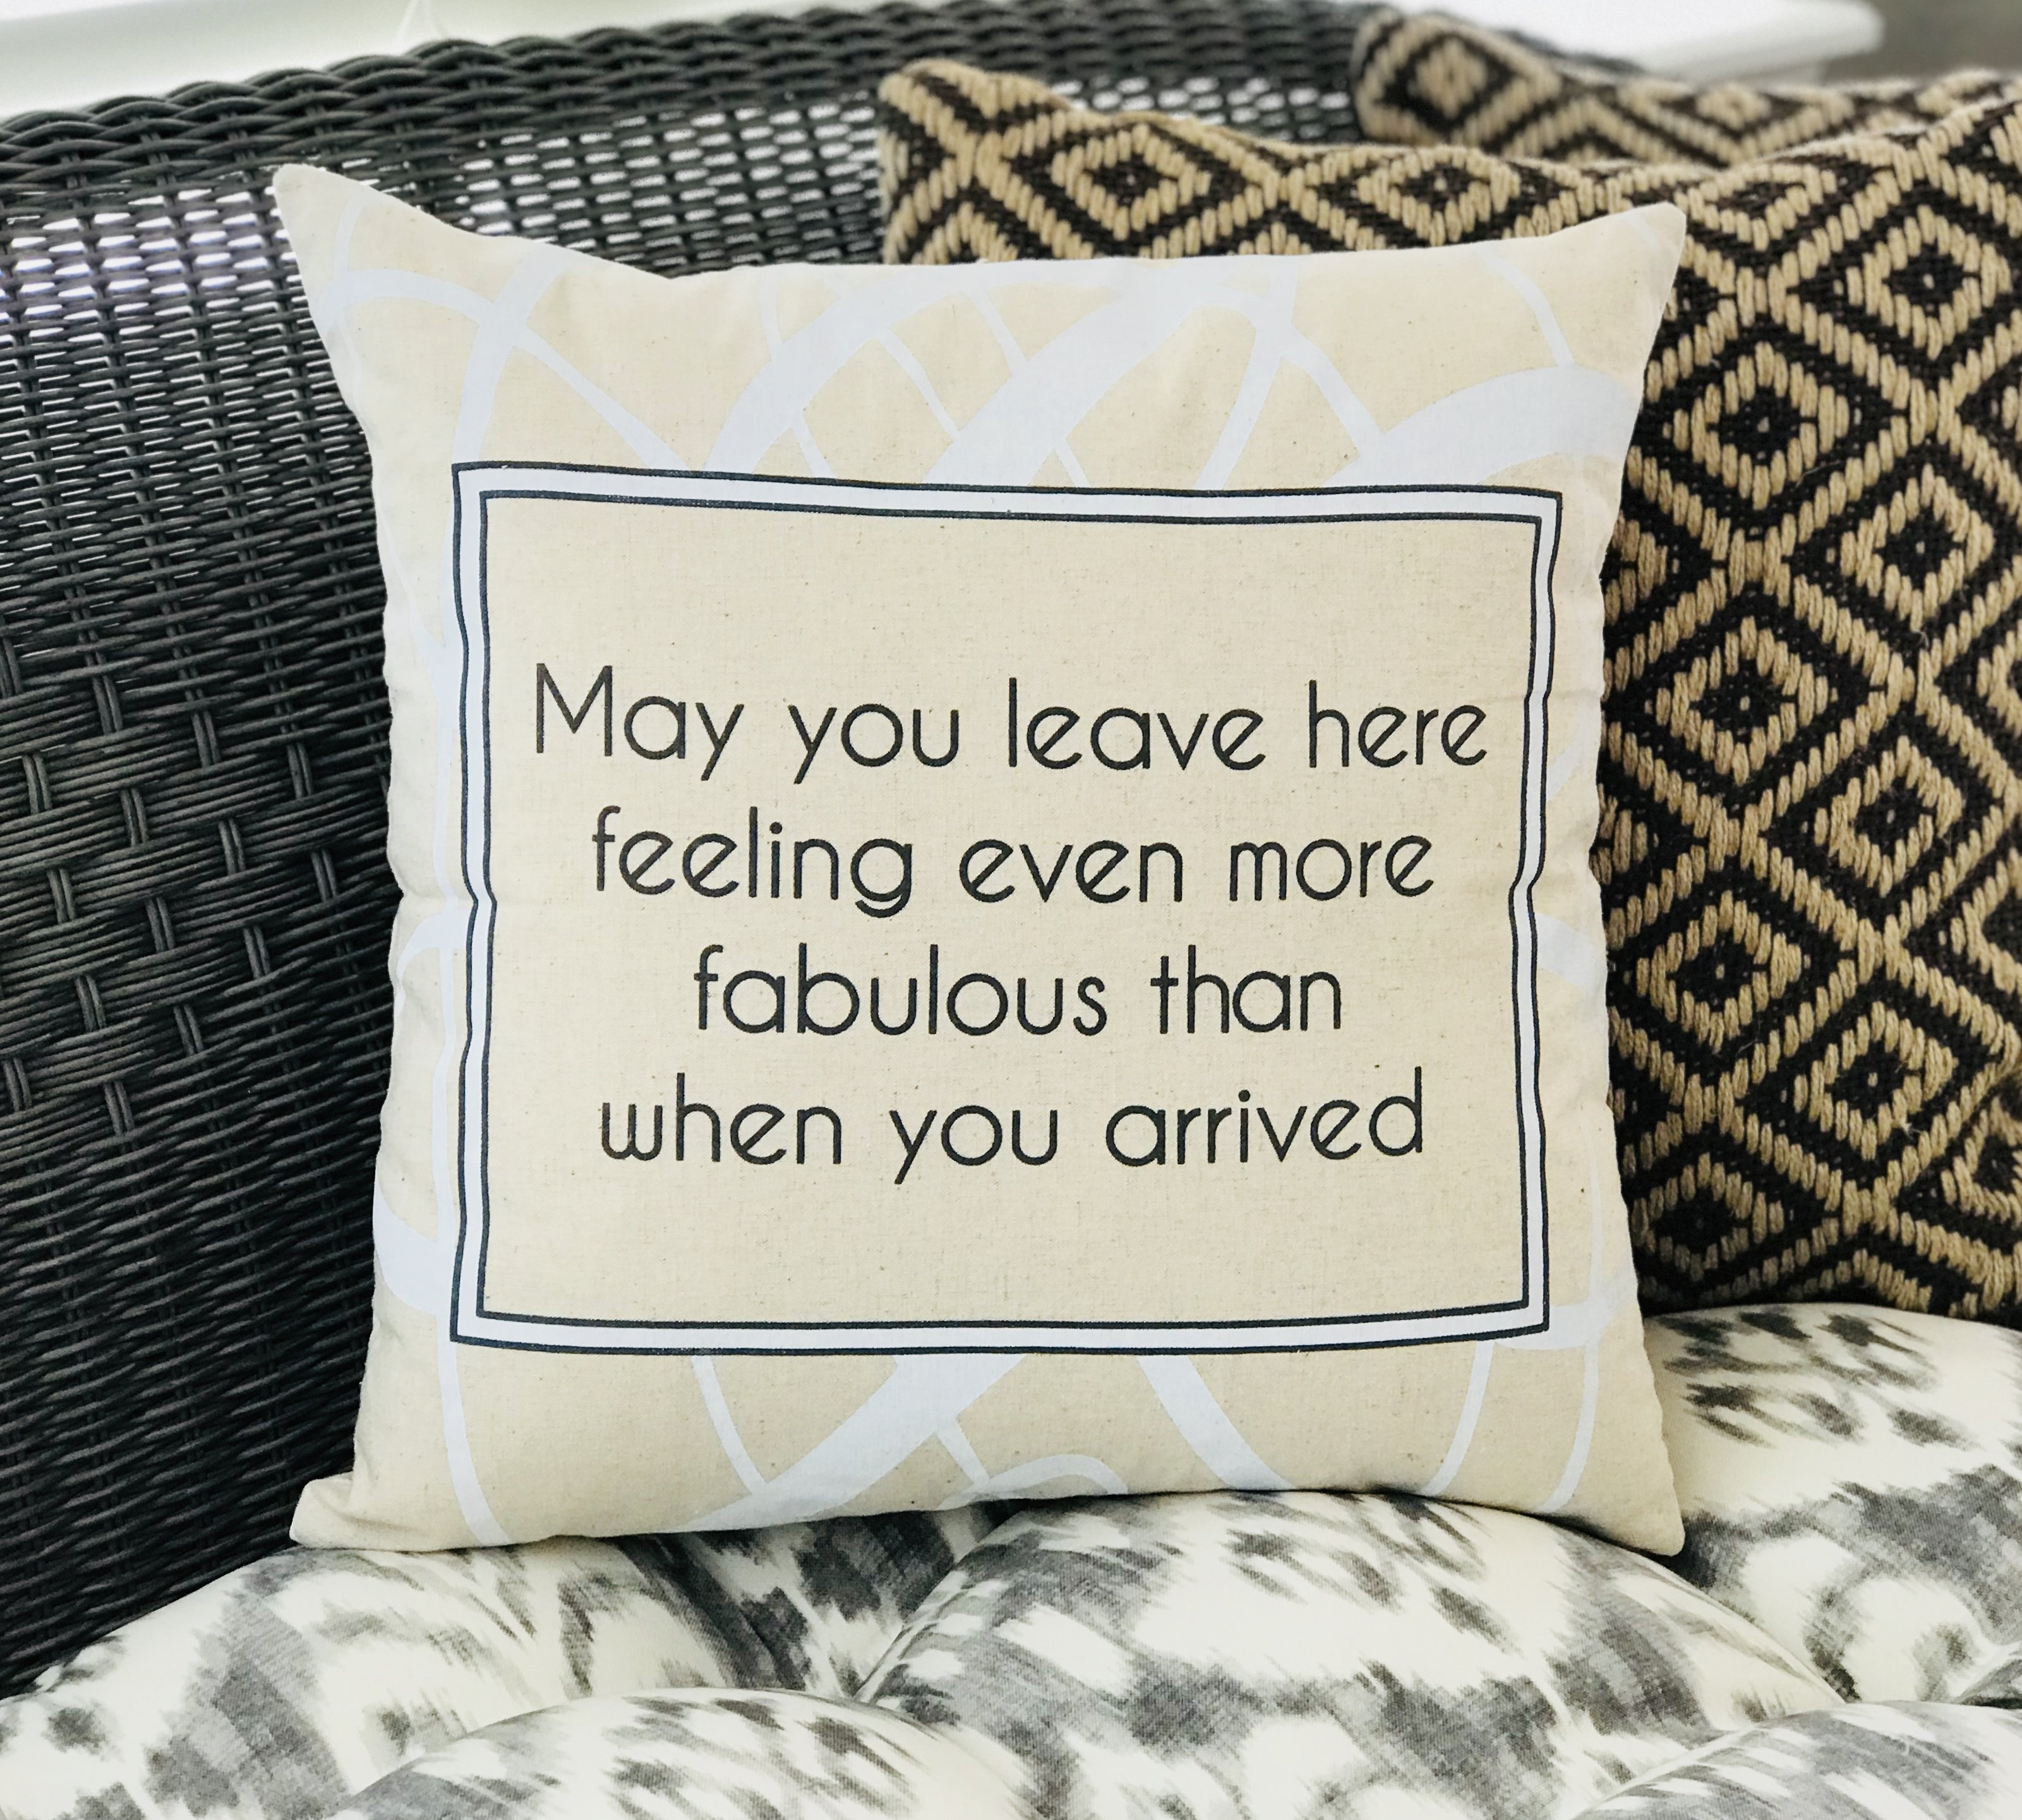 95f68edba9530 Our double-sided pillows can become even more fabulous with our custom made  pins. Pins have a special straight back so they can be enjoyed for home ...